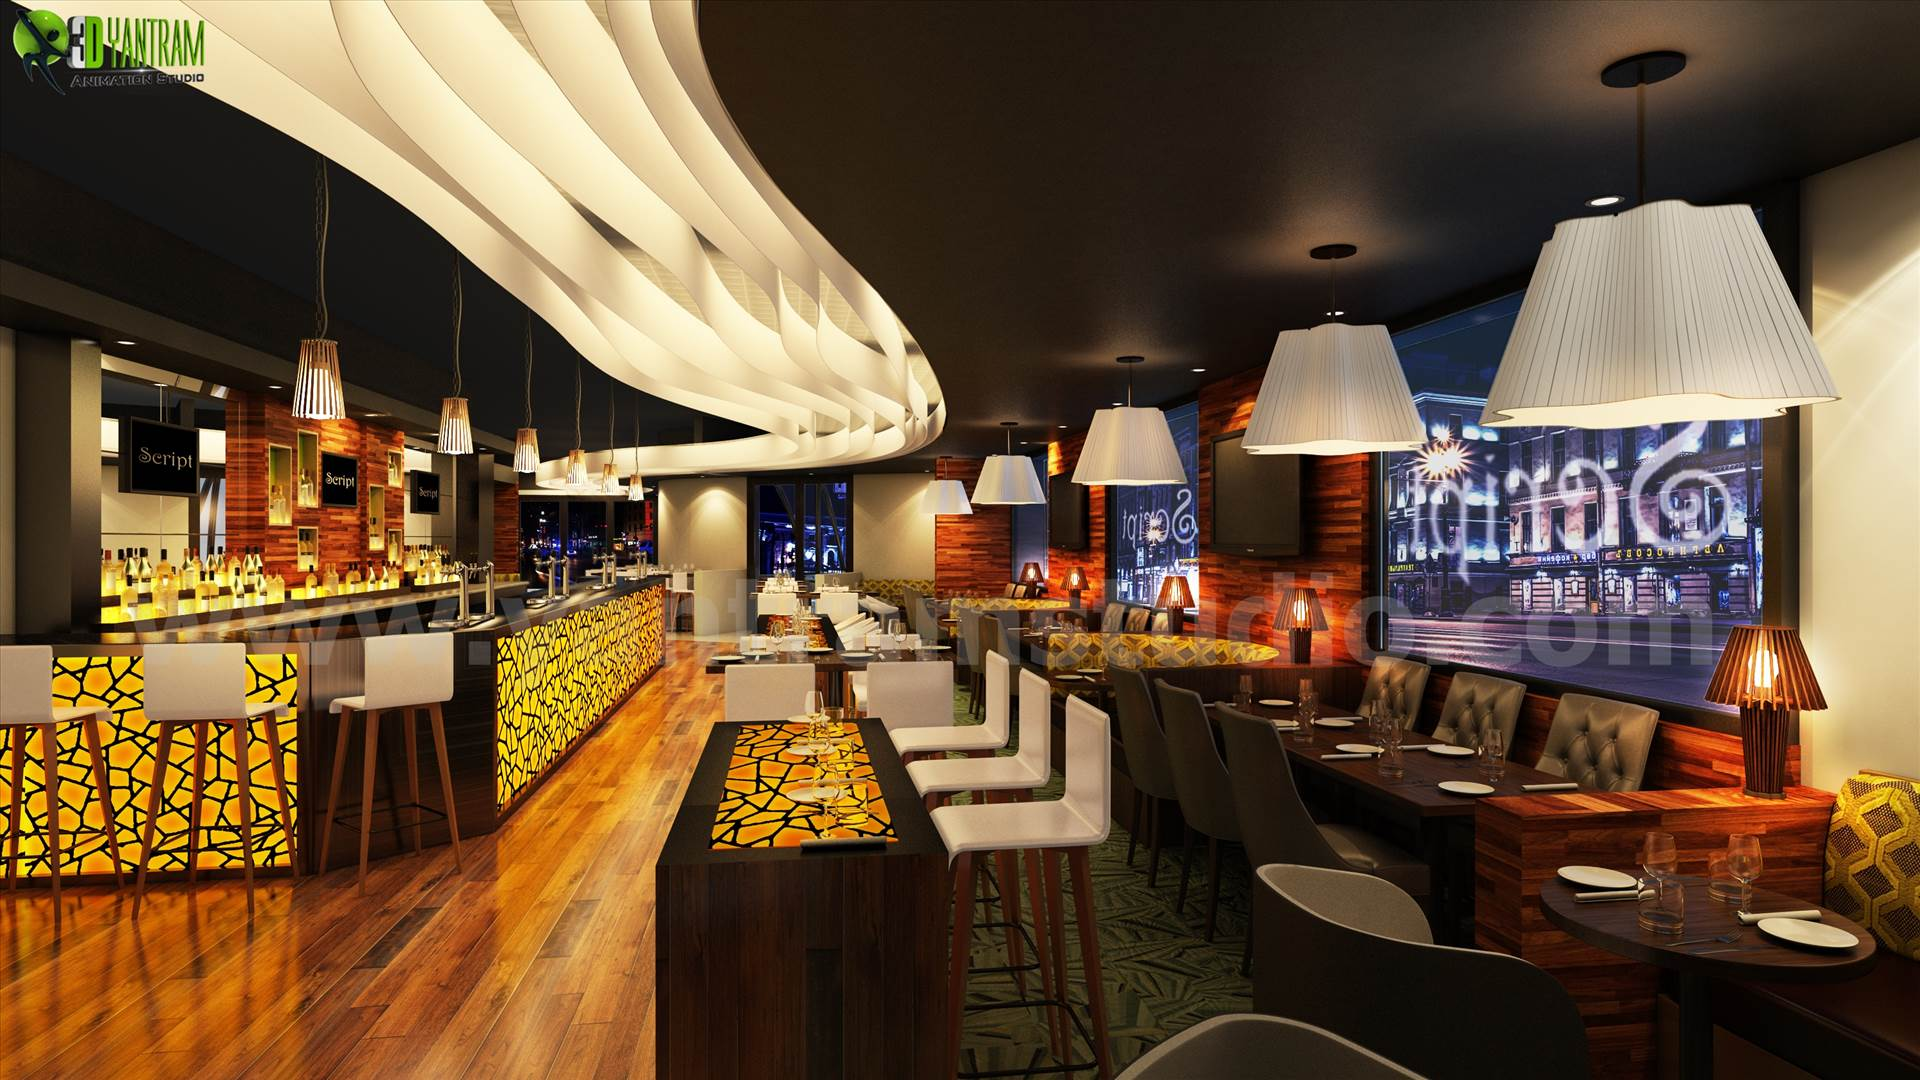 Bar 3D Interior Night View Rendering Design Liverpool - 3d interior modeling by yantramstudio